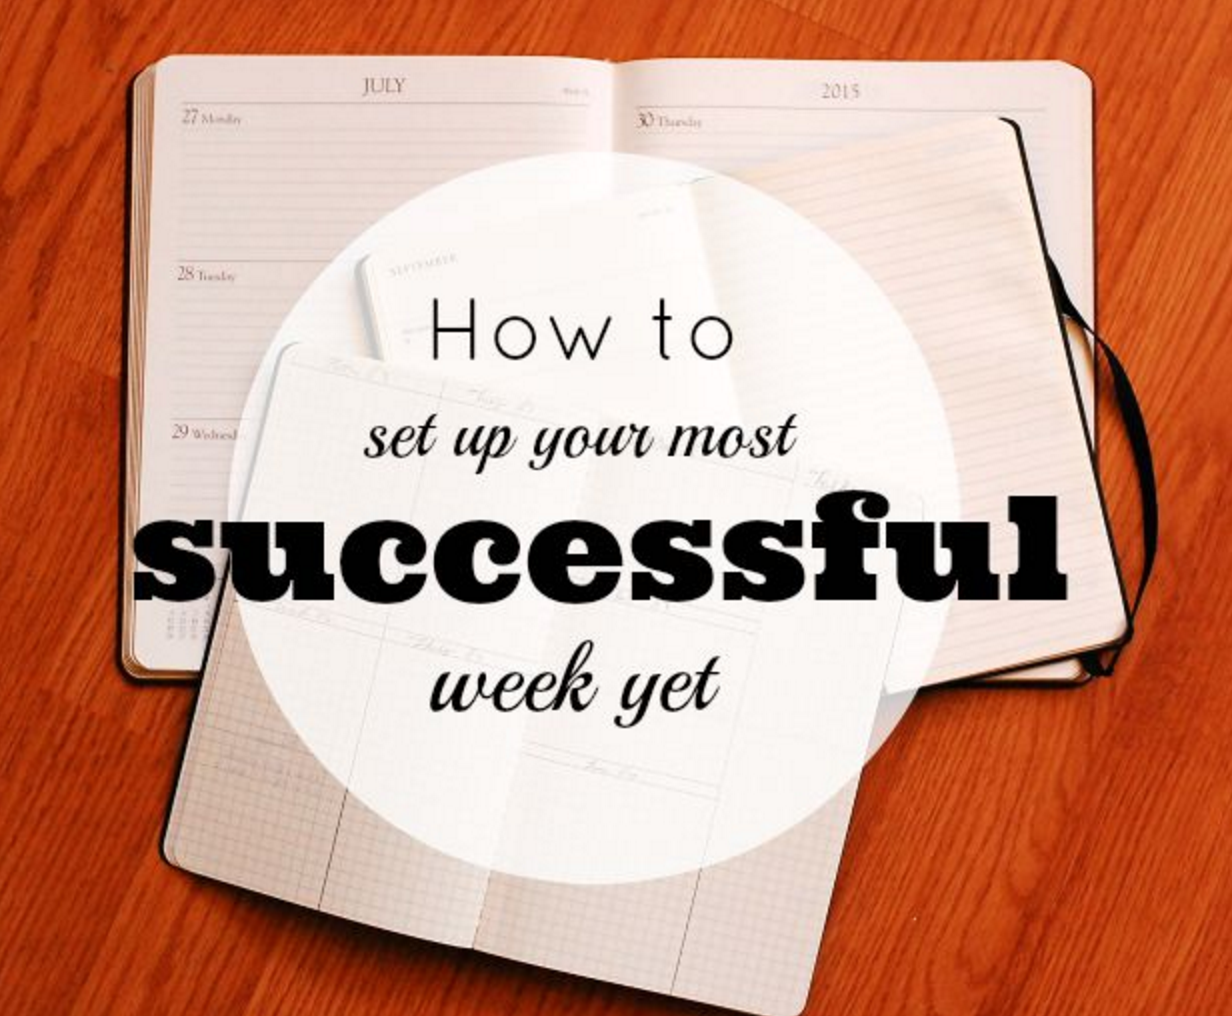 h ow to set up your most successful week yet